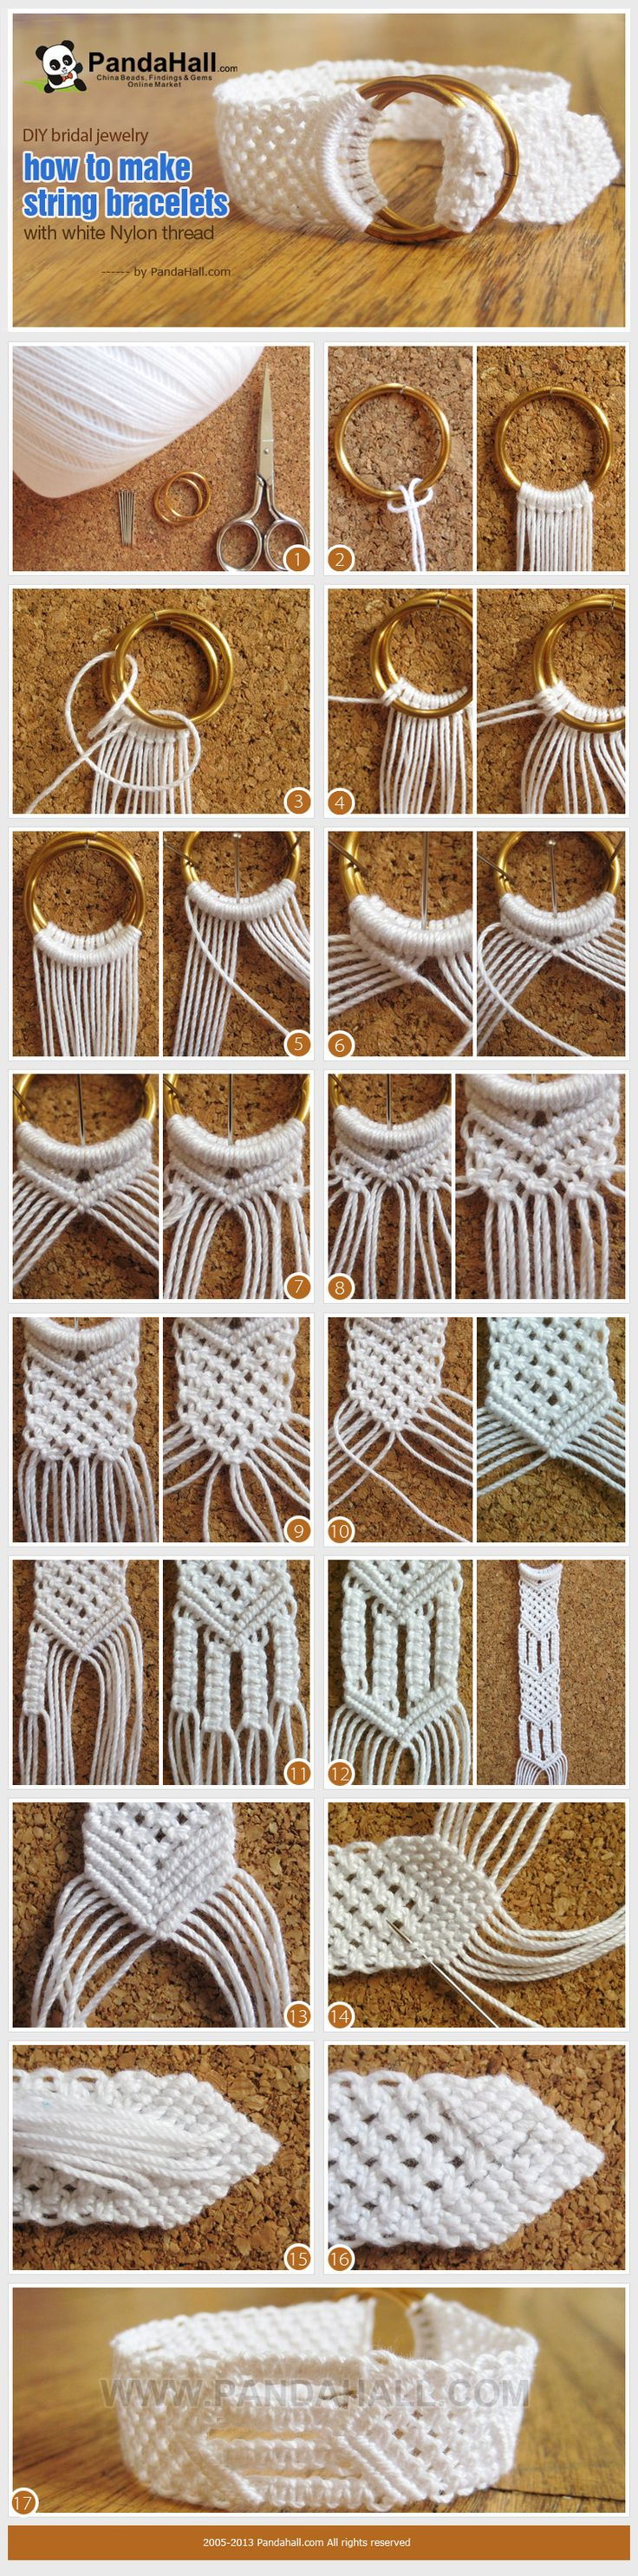 DIY how to make string bracelets